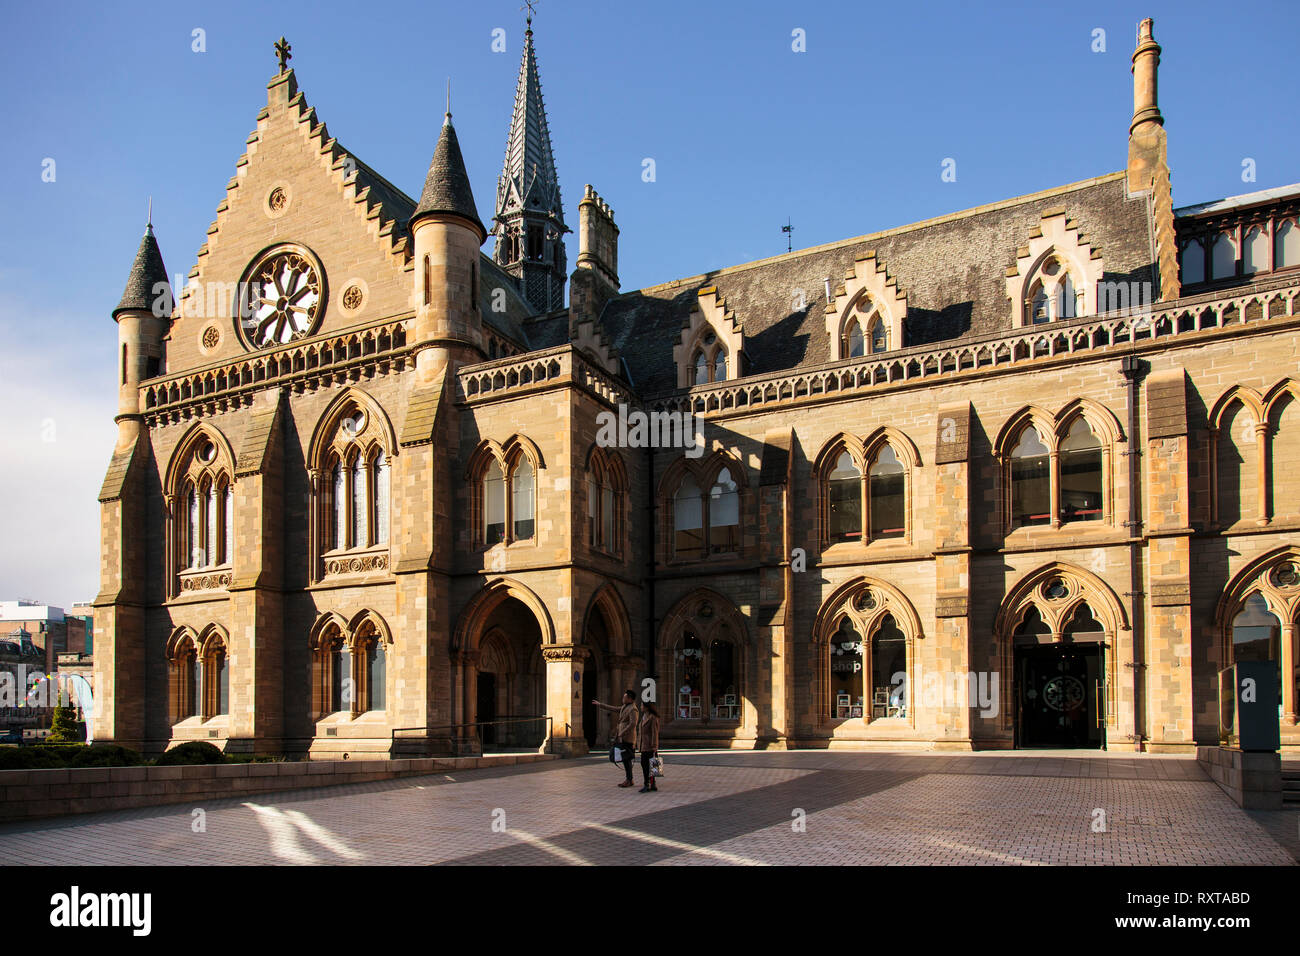 The McManus Art Gallery & Museum in Dundee caught in evening sunlight - Stock Image